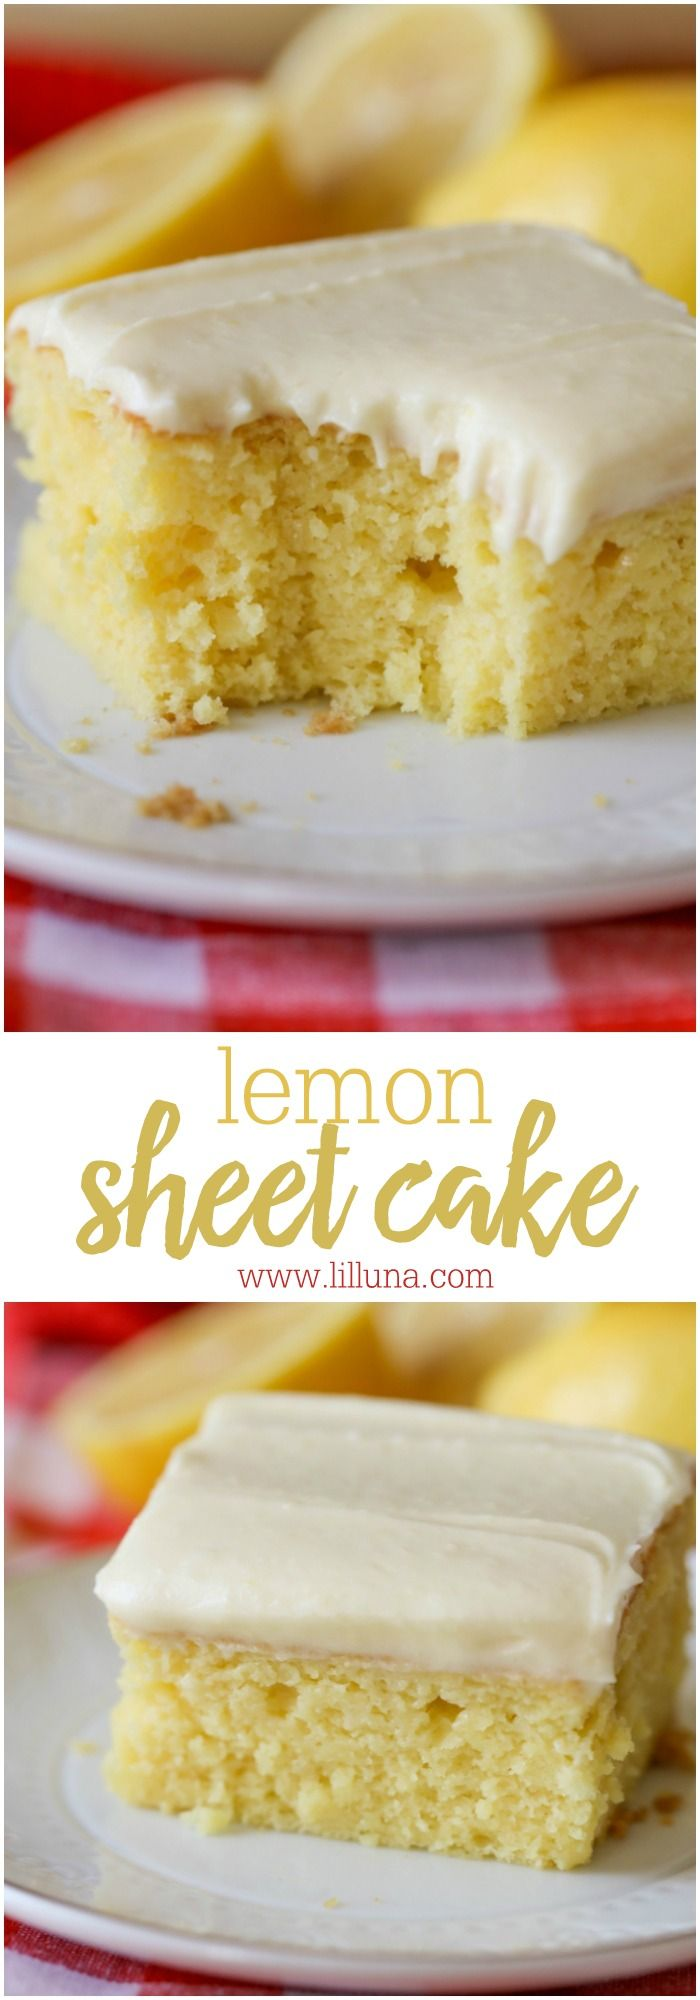 Super moist and delicious Lemon Sheet Cake recipe topped off with a tasty lemon buttercream frosting - our new favorite dessert!